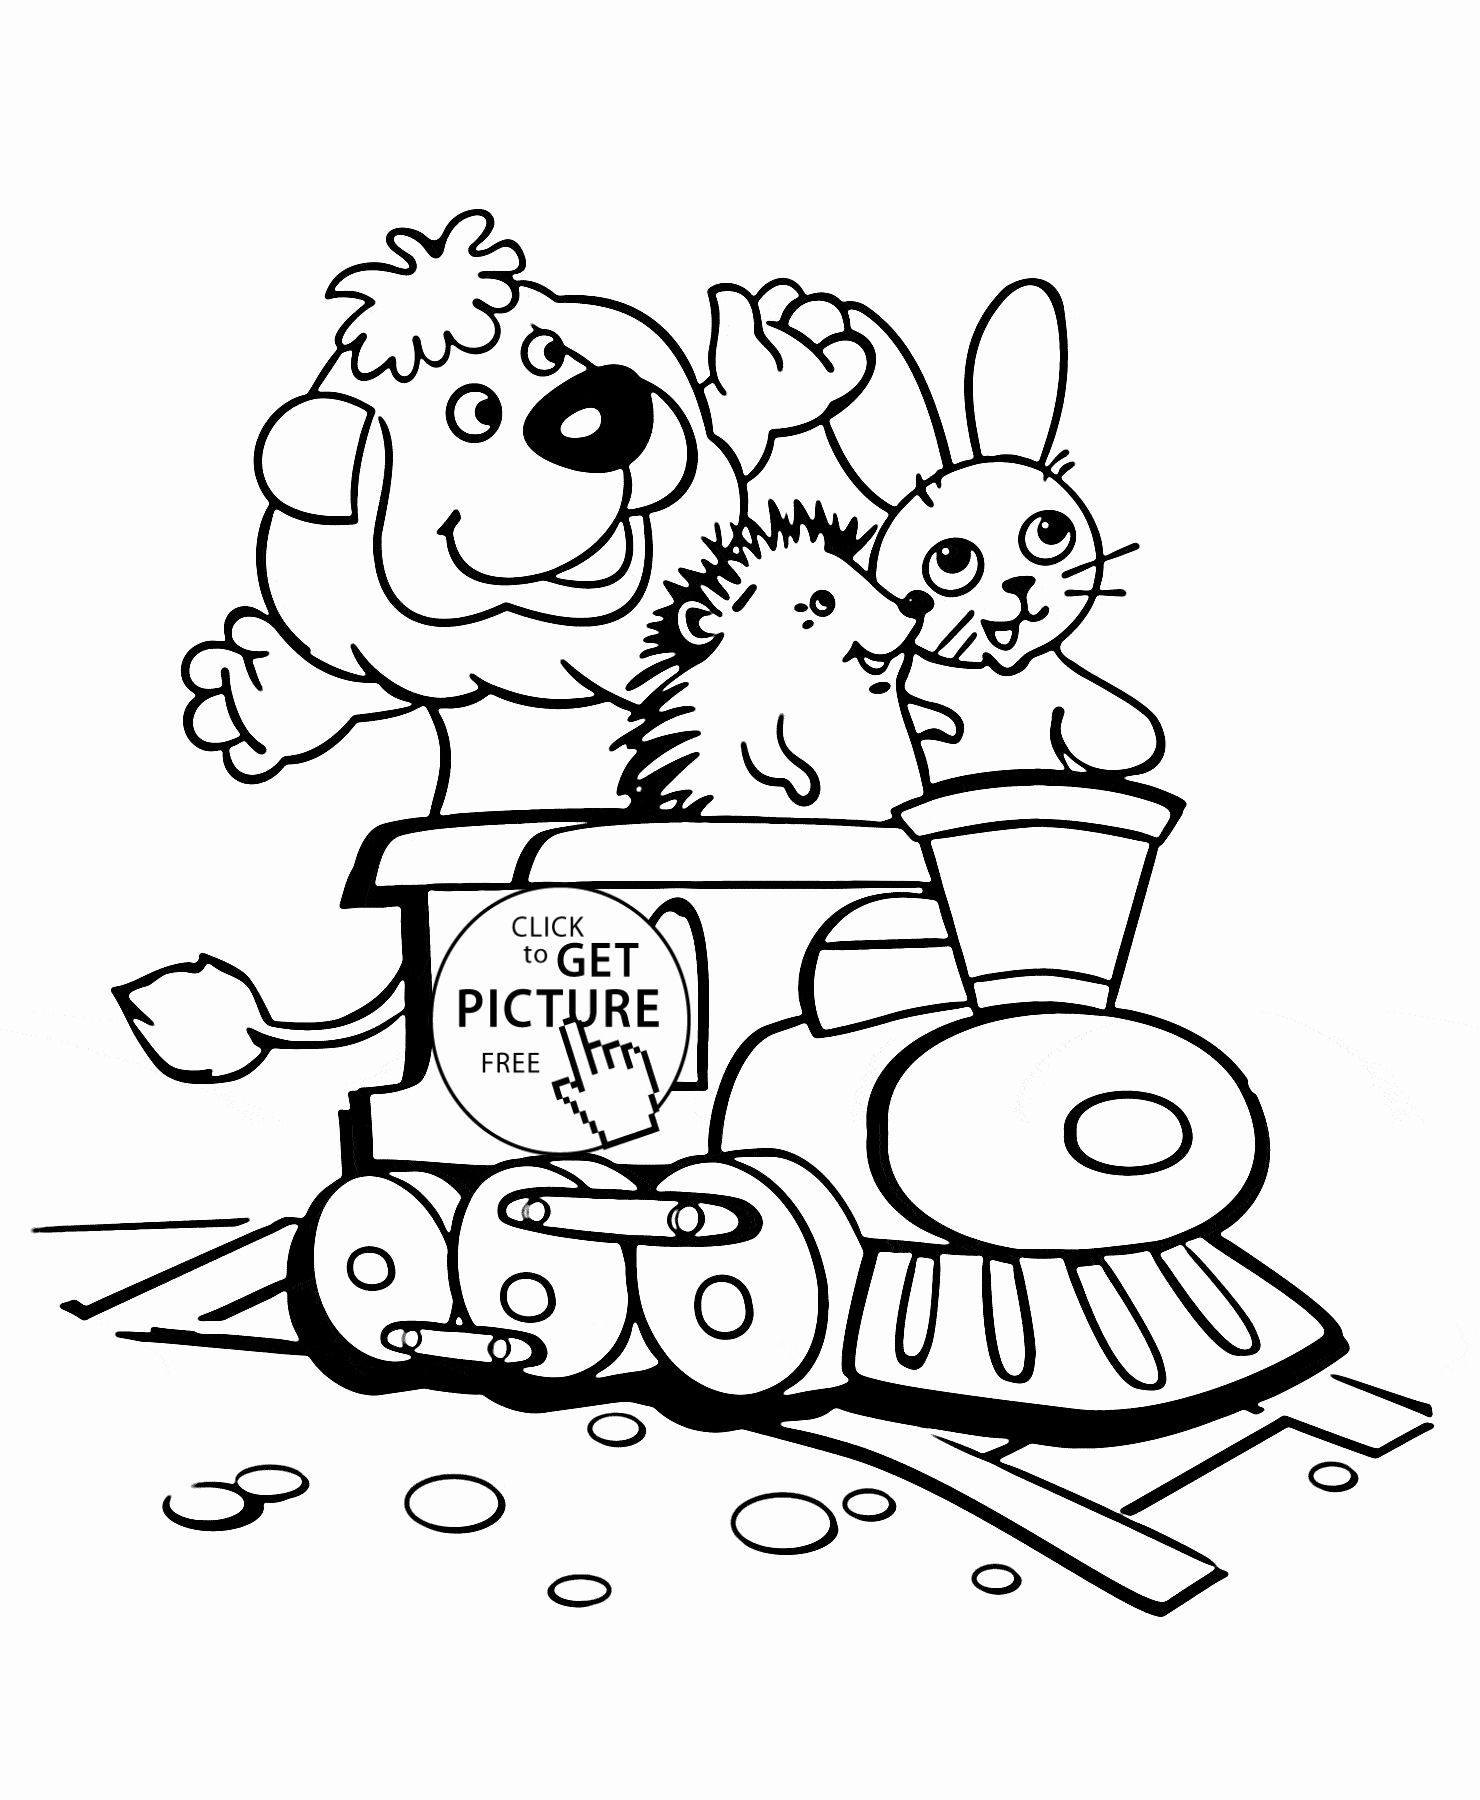 24 Printable Train Coloring Page Djmatioca Com In 2020 Train